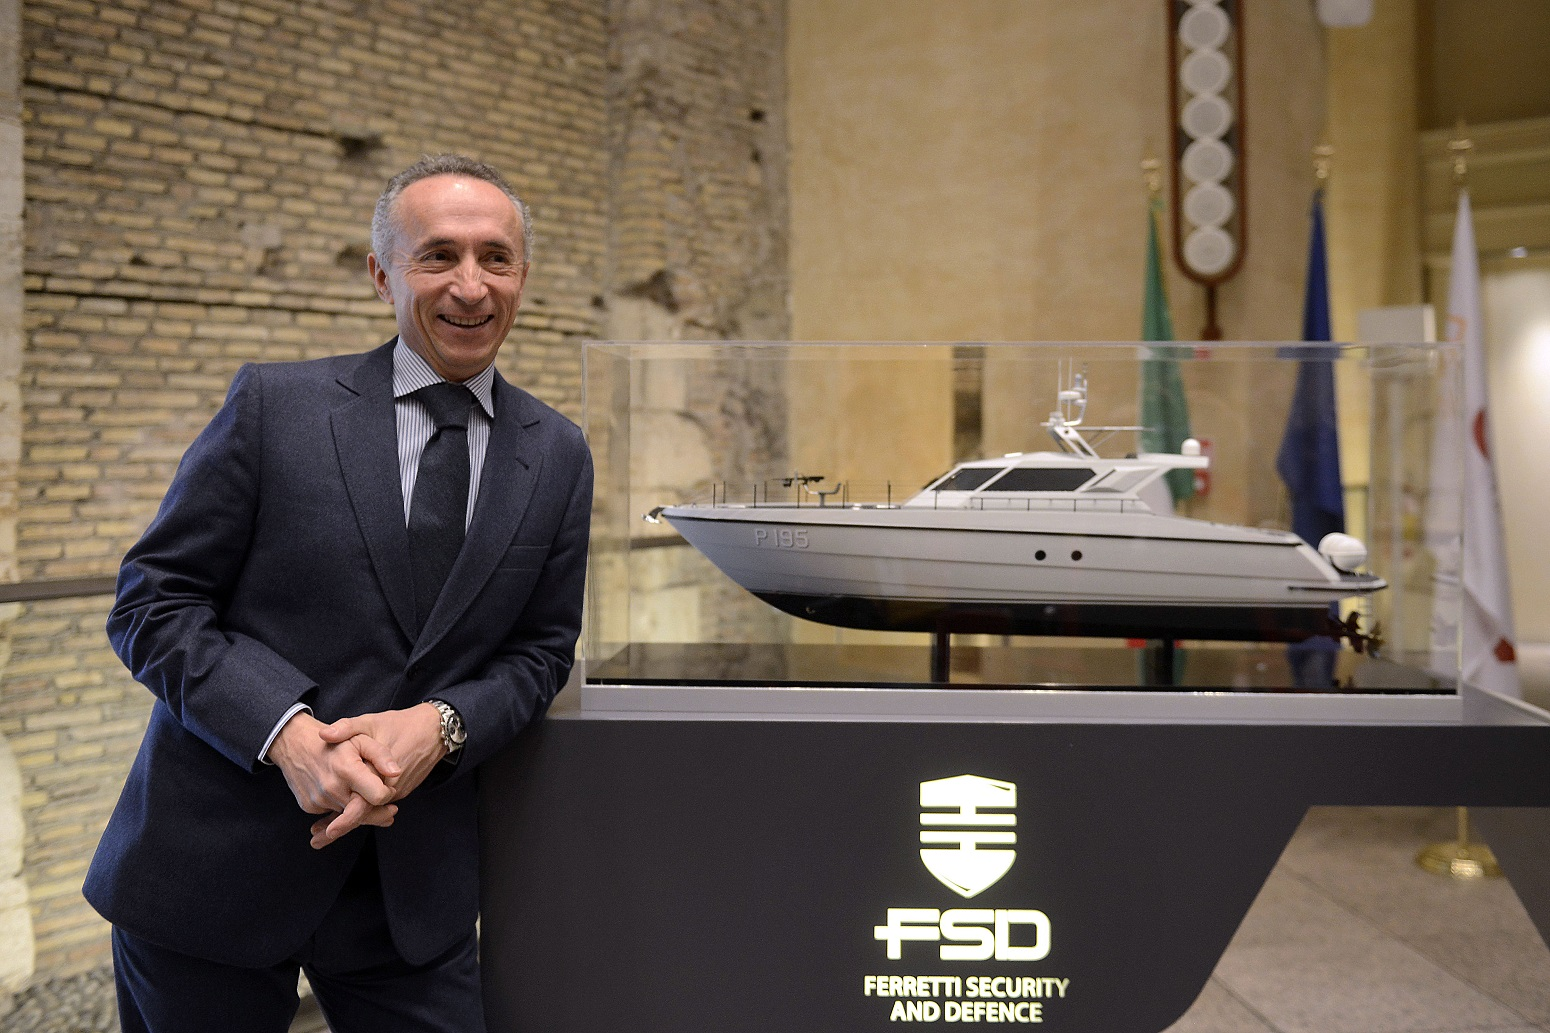 ferretti-security-and-defence-6